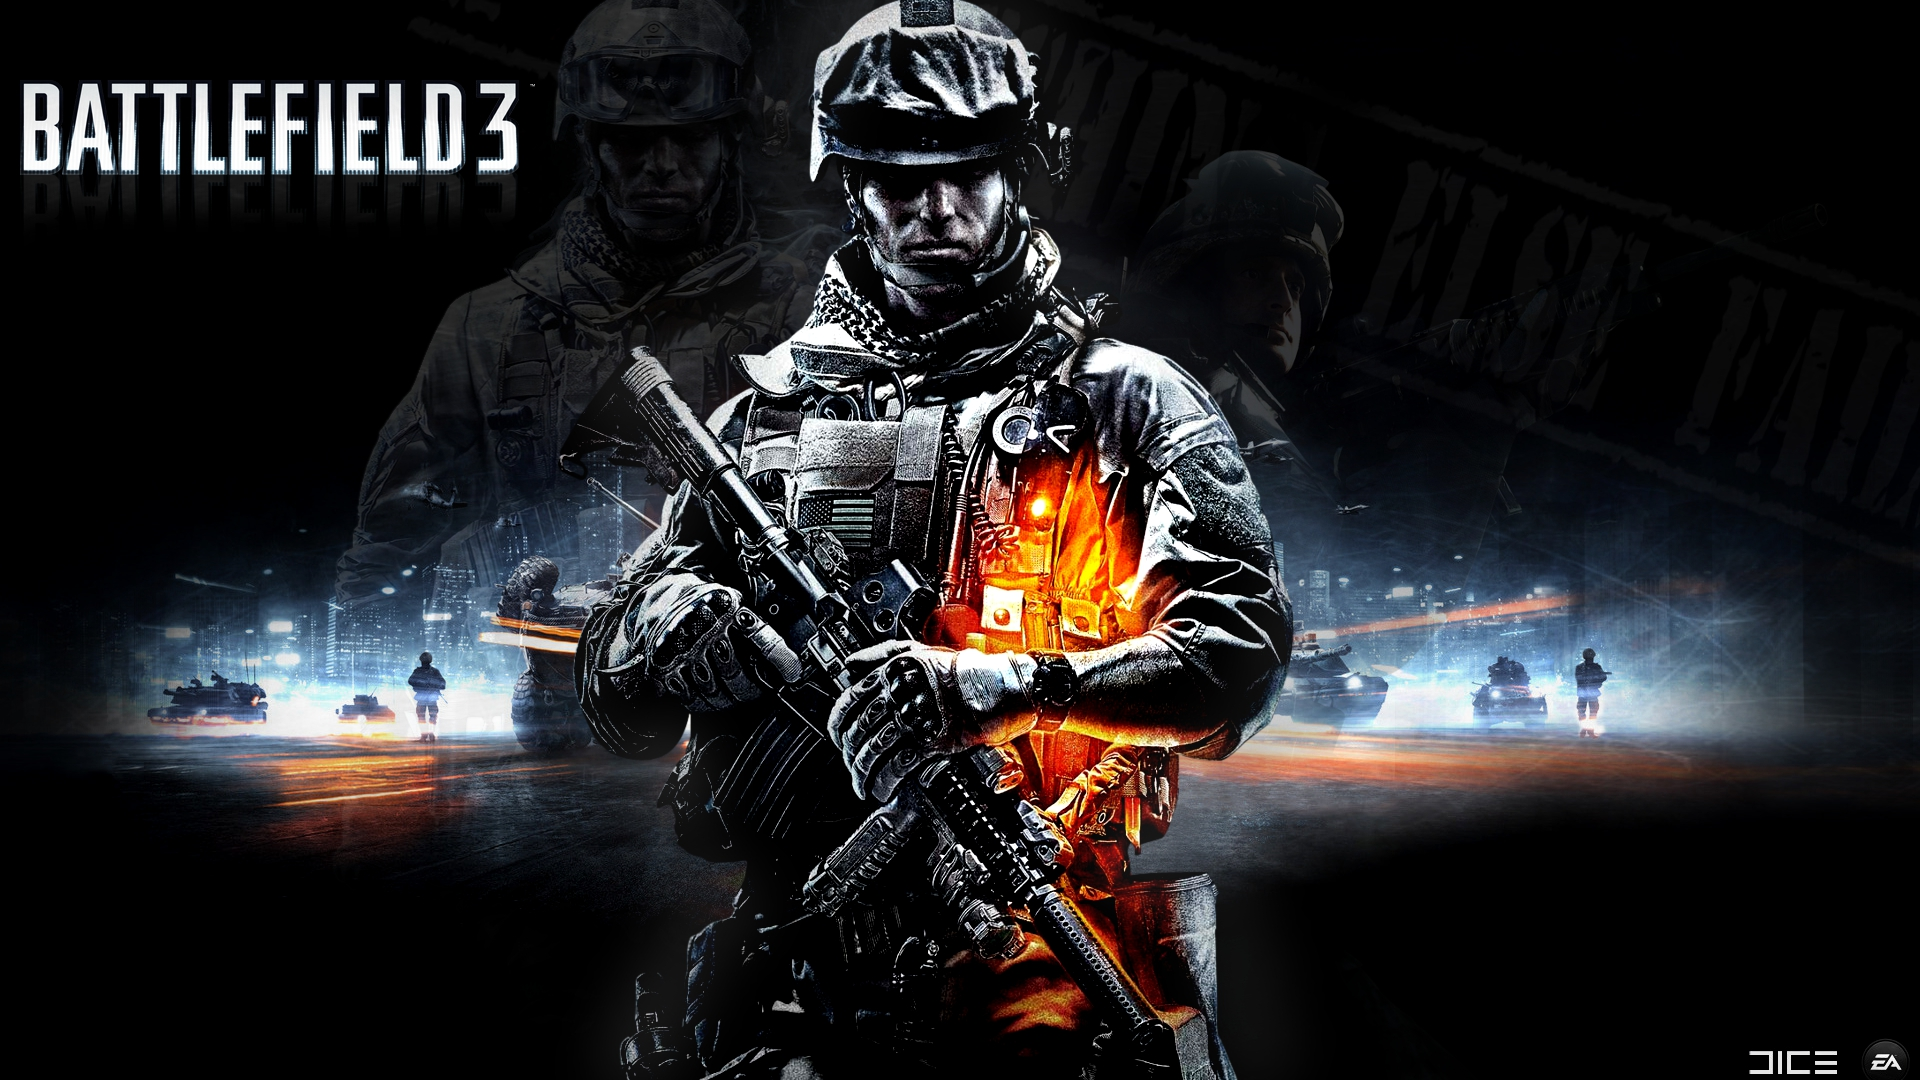 bf3 skull wallpaper - photo #16